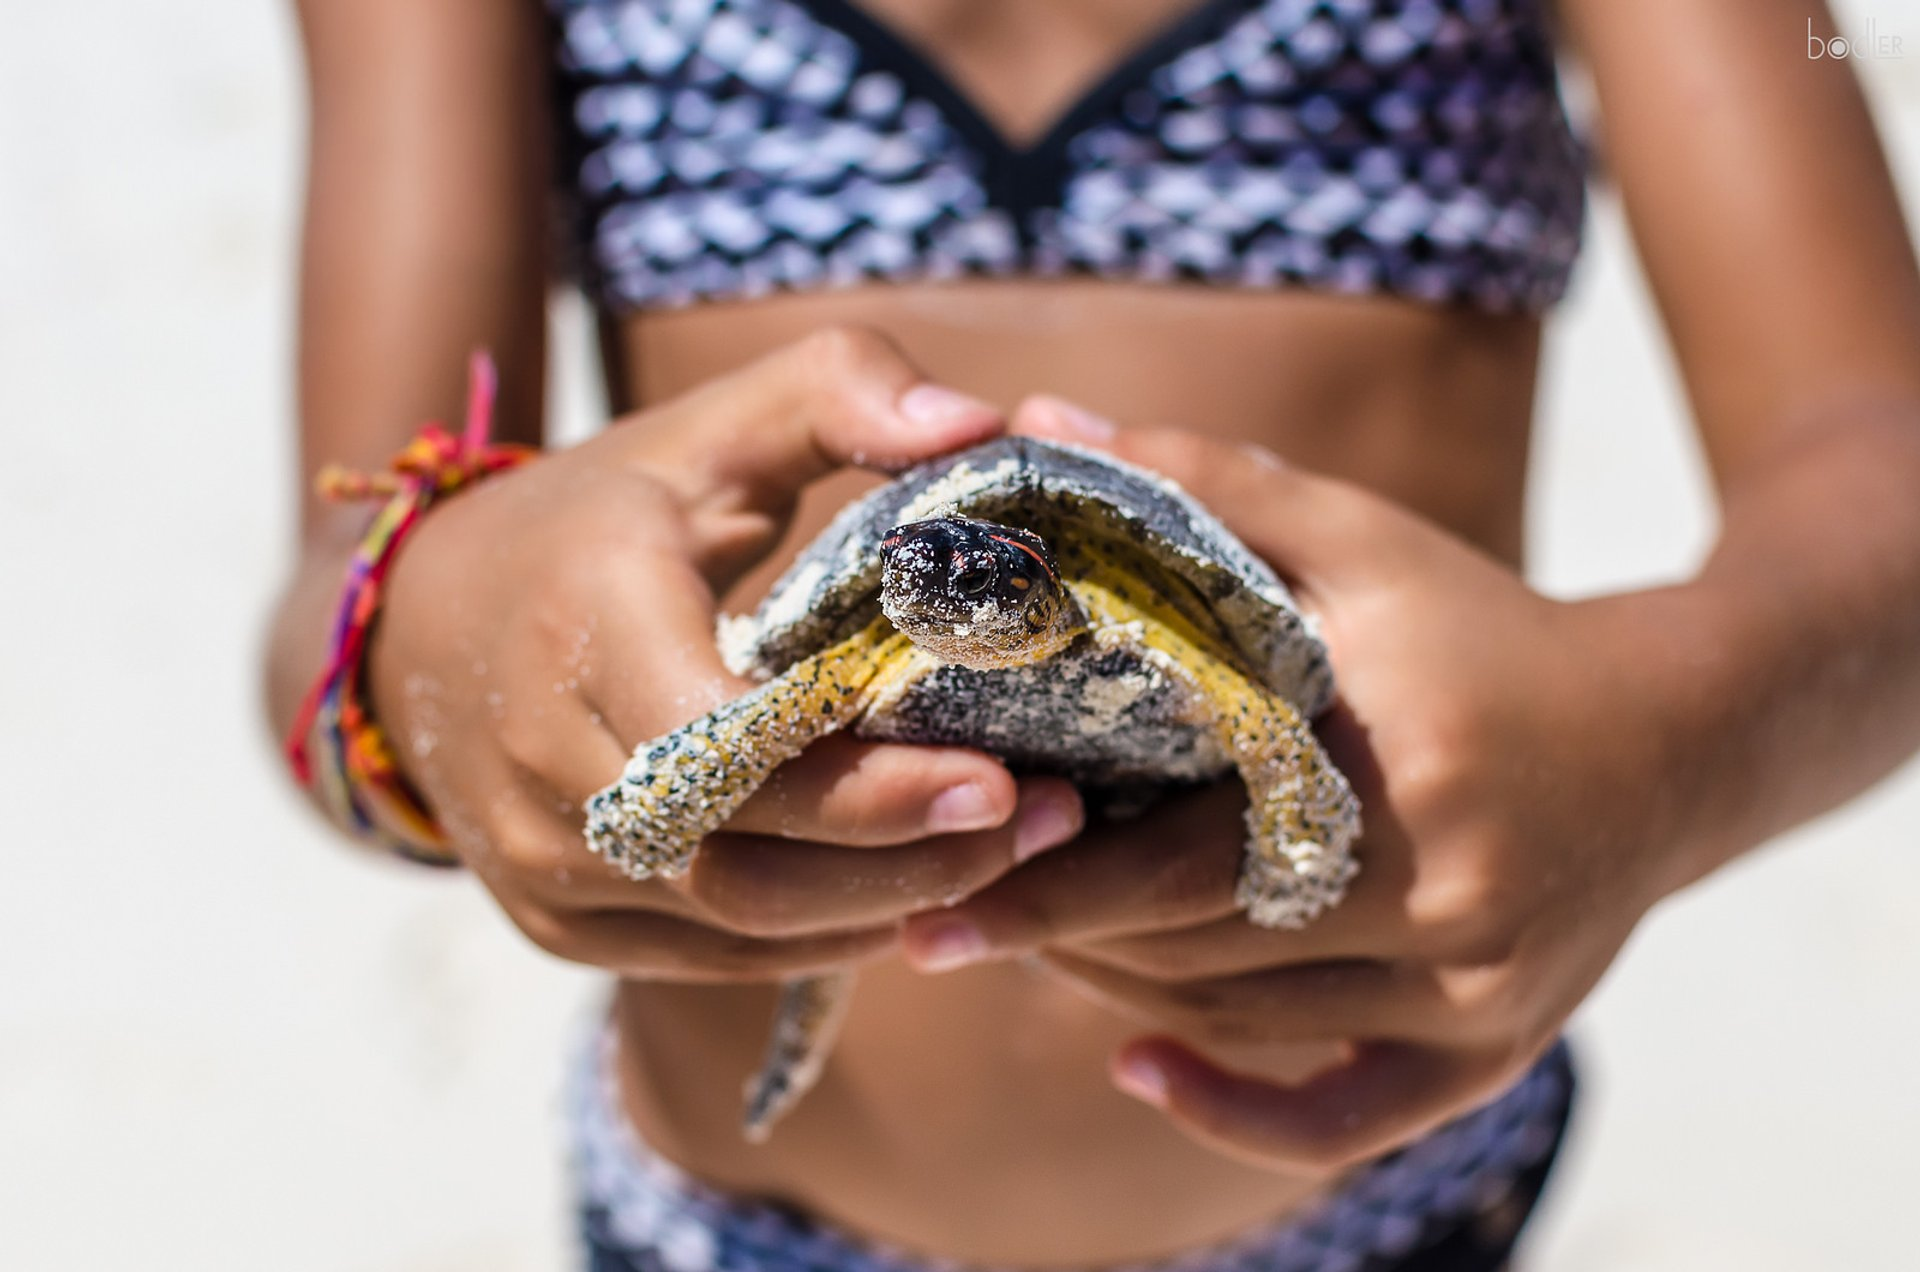 Baby Turtle Release in Mexico - Best Season